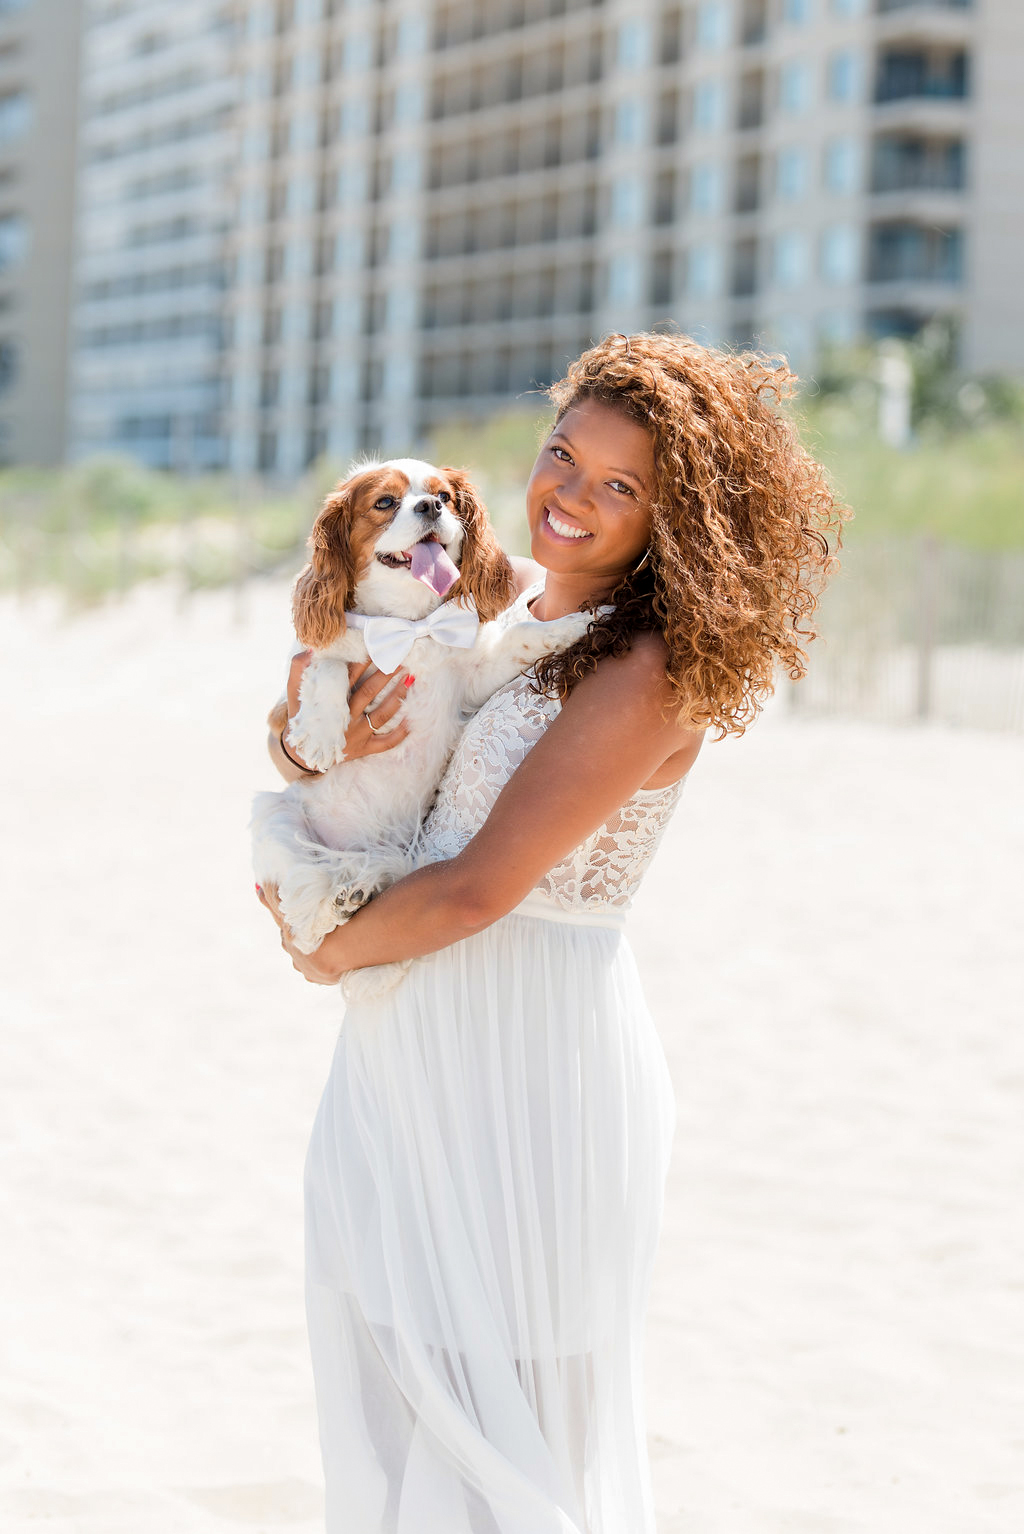 woman holding dog with white bow tie